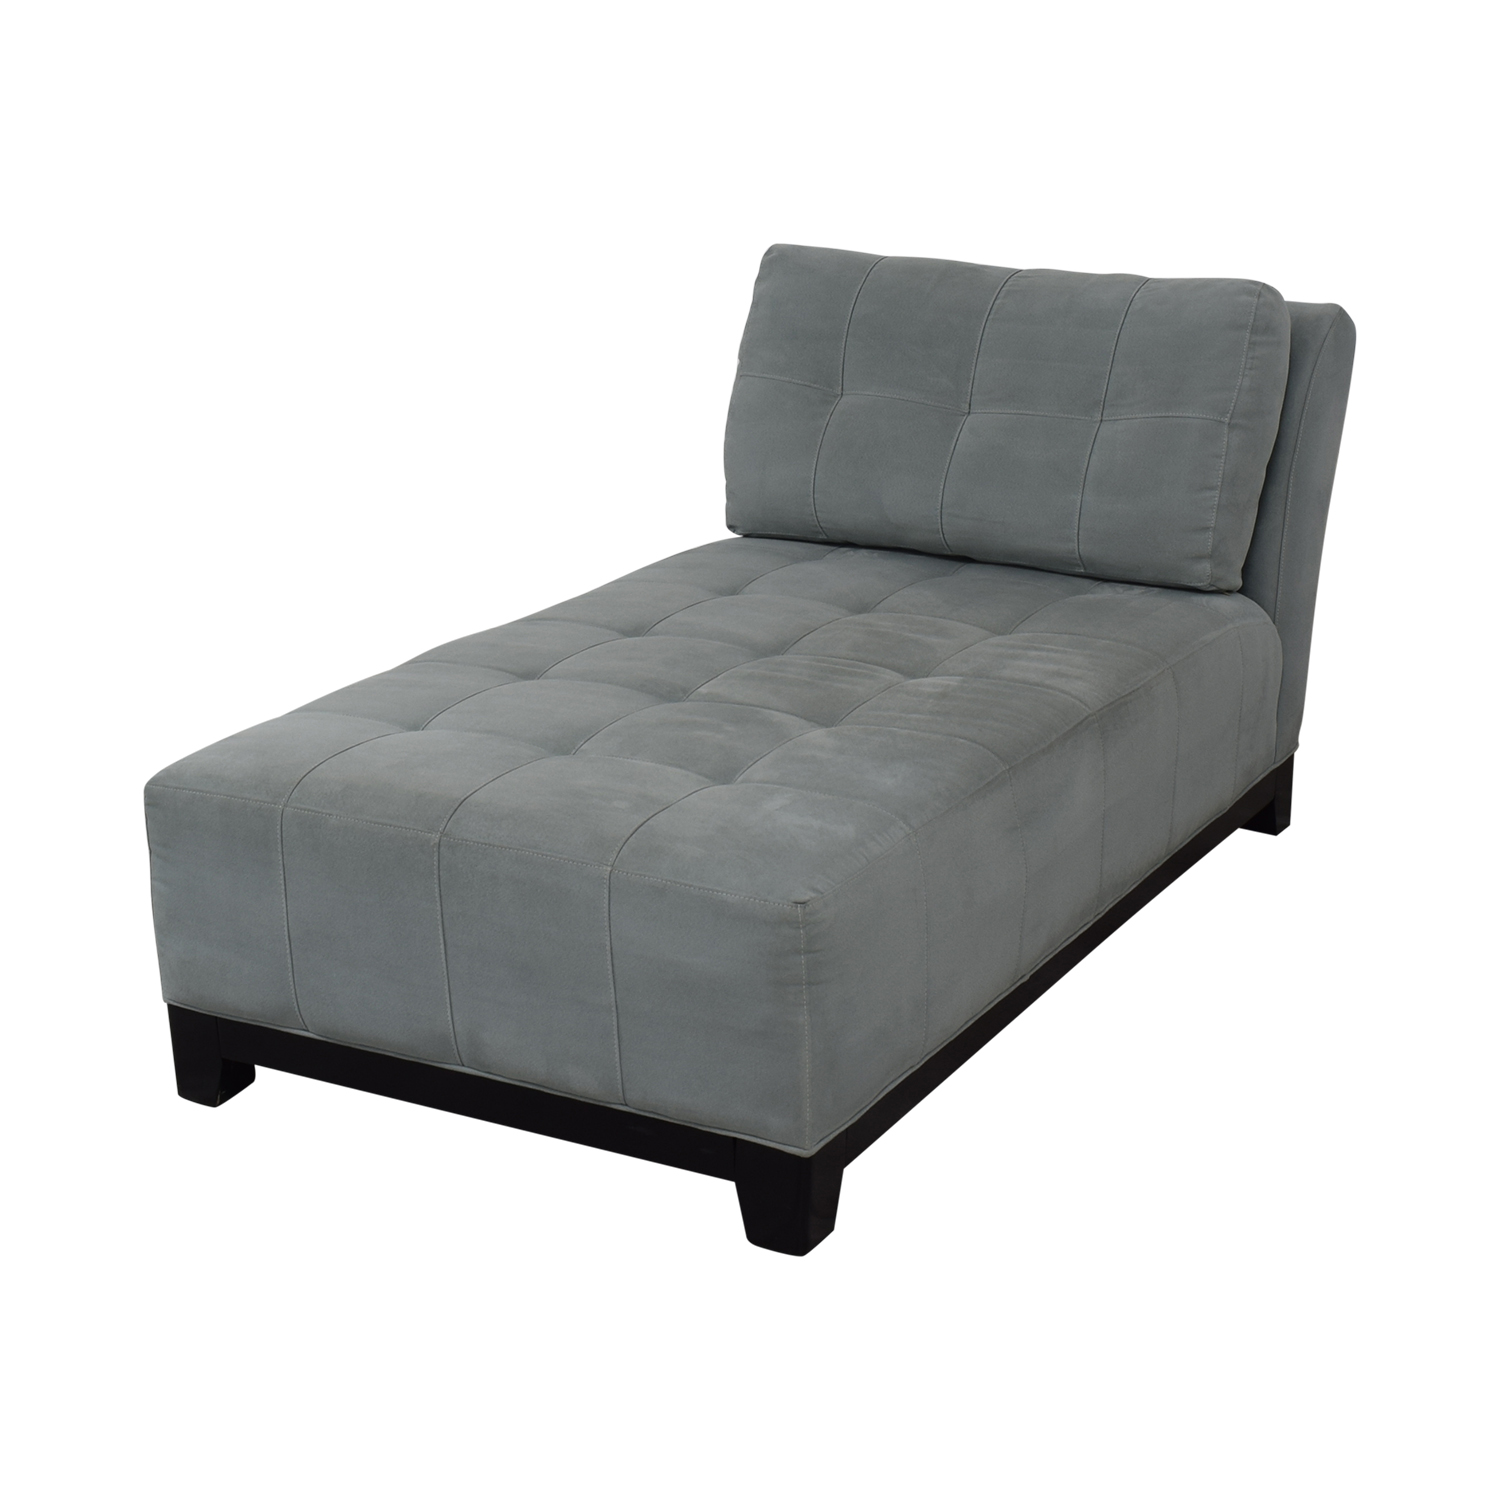 HM Richards Furniture Chaise Lounge / Chaises